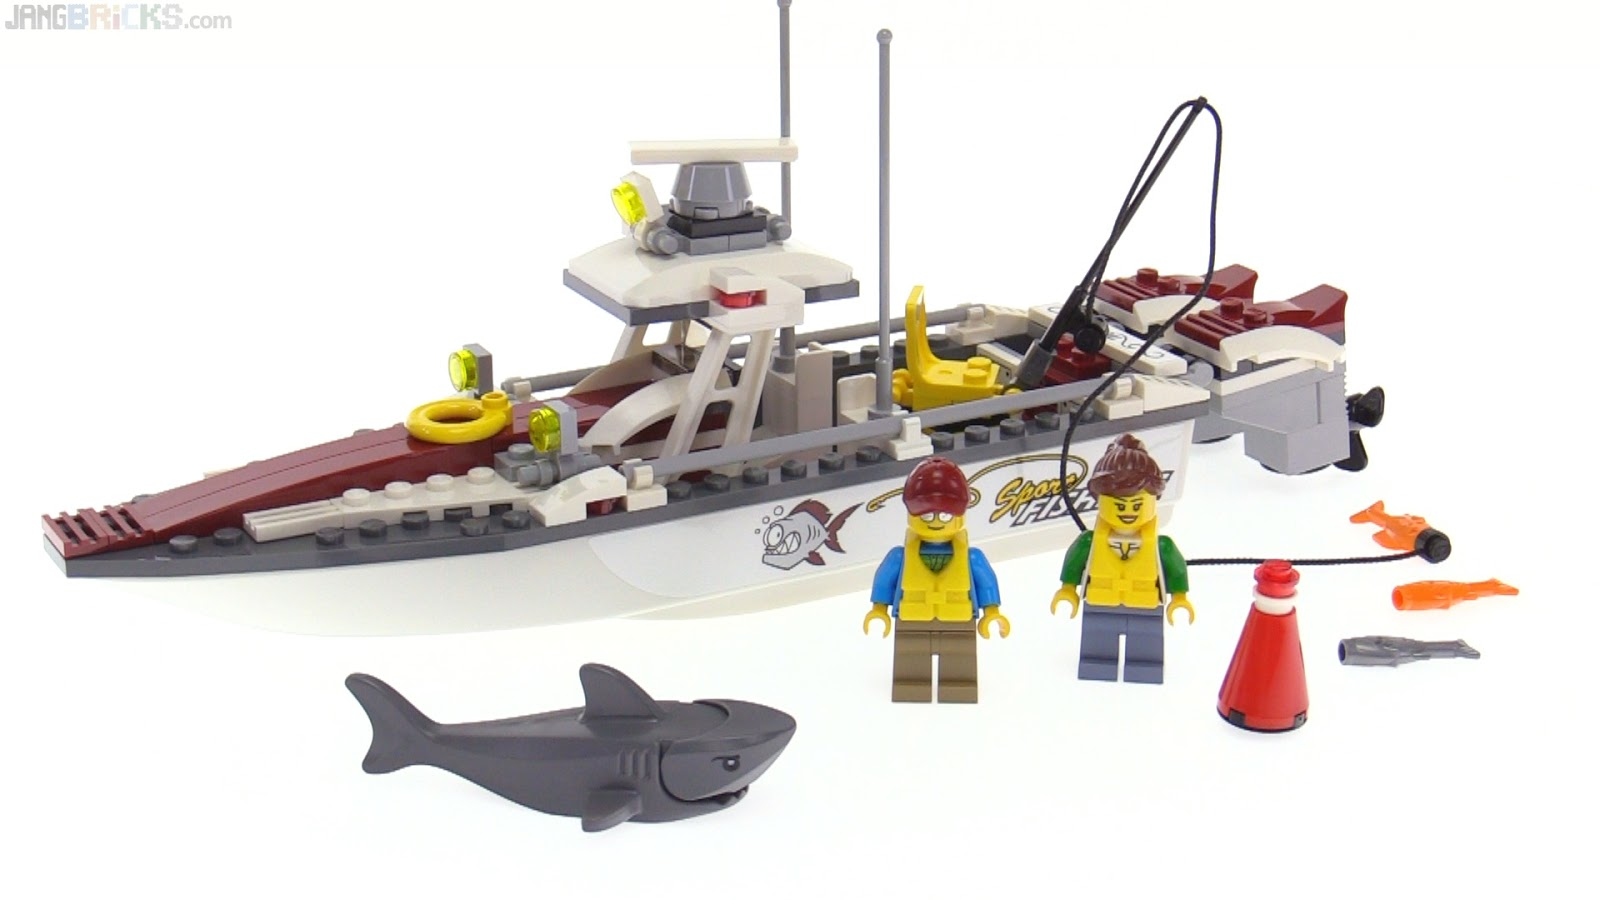 duplo fire helicopter with Lego City 2017 Fishing Boat Review 60147 on Product info in addition Lego City 2012 Set Images And Details additionally Fisher Price Laugh Learn Smart Stages Teaching Tote also Lego City 2017 Fishing Boat Review 60147 in addition 1591021 32454508881.